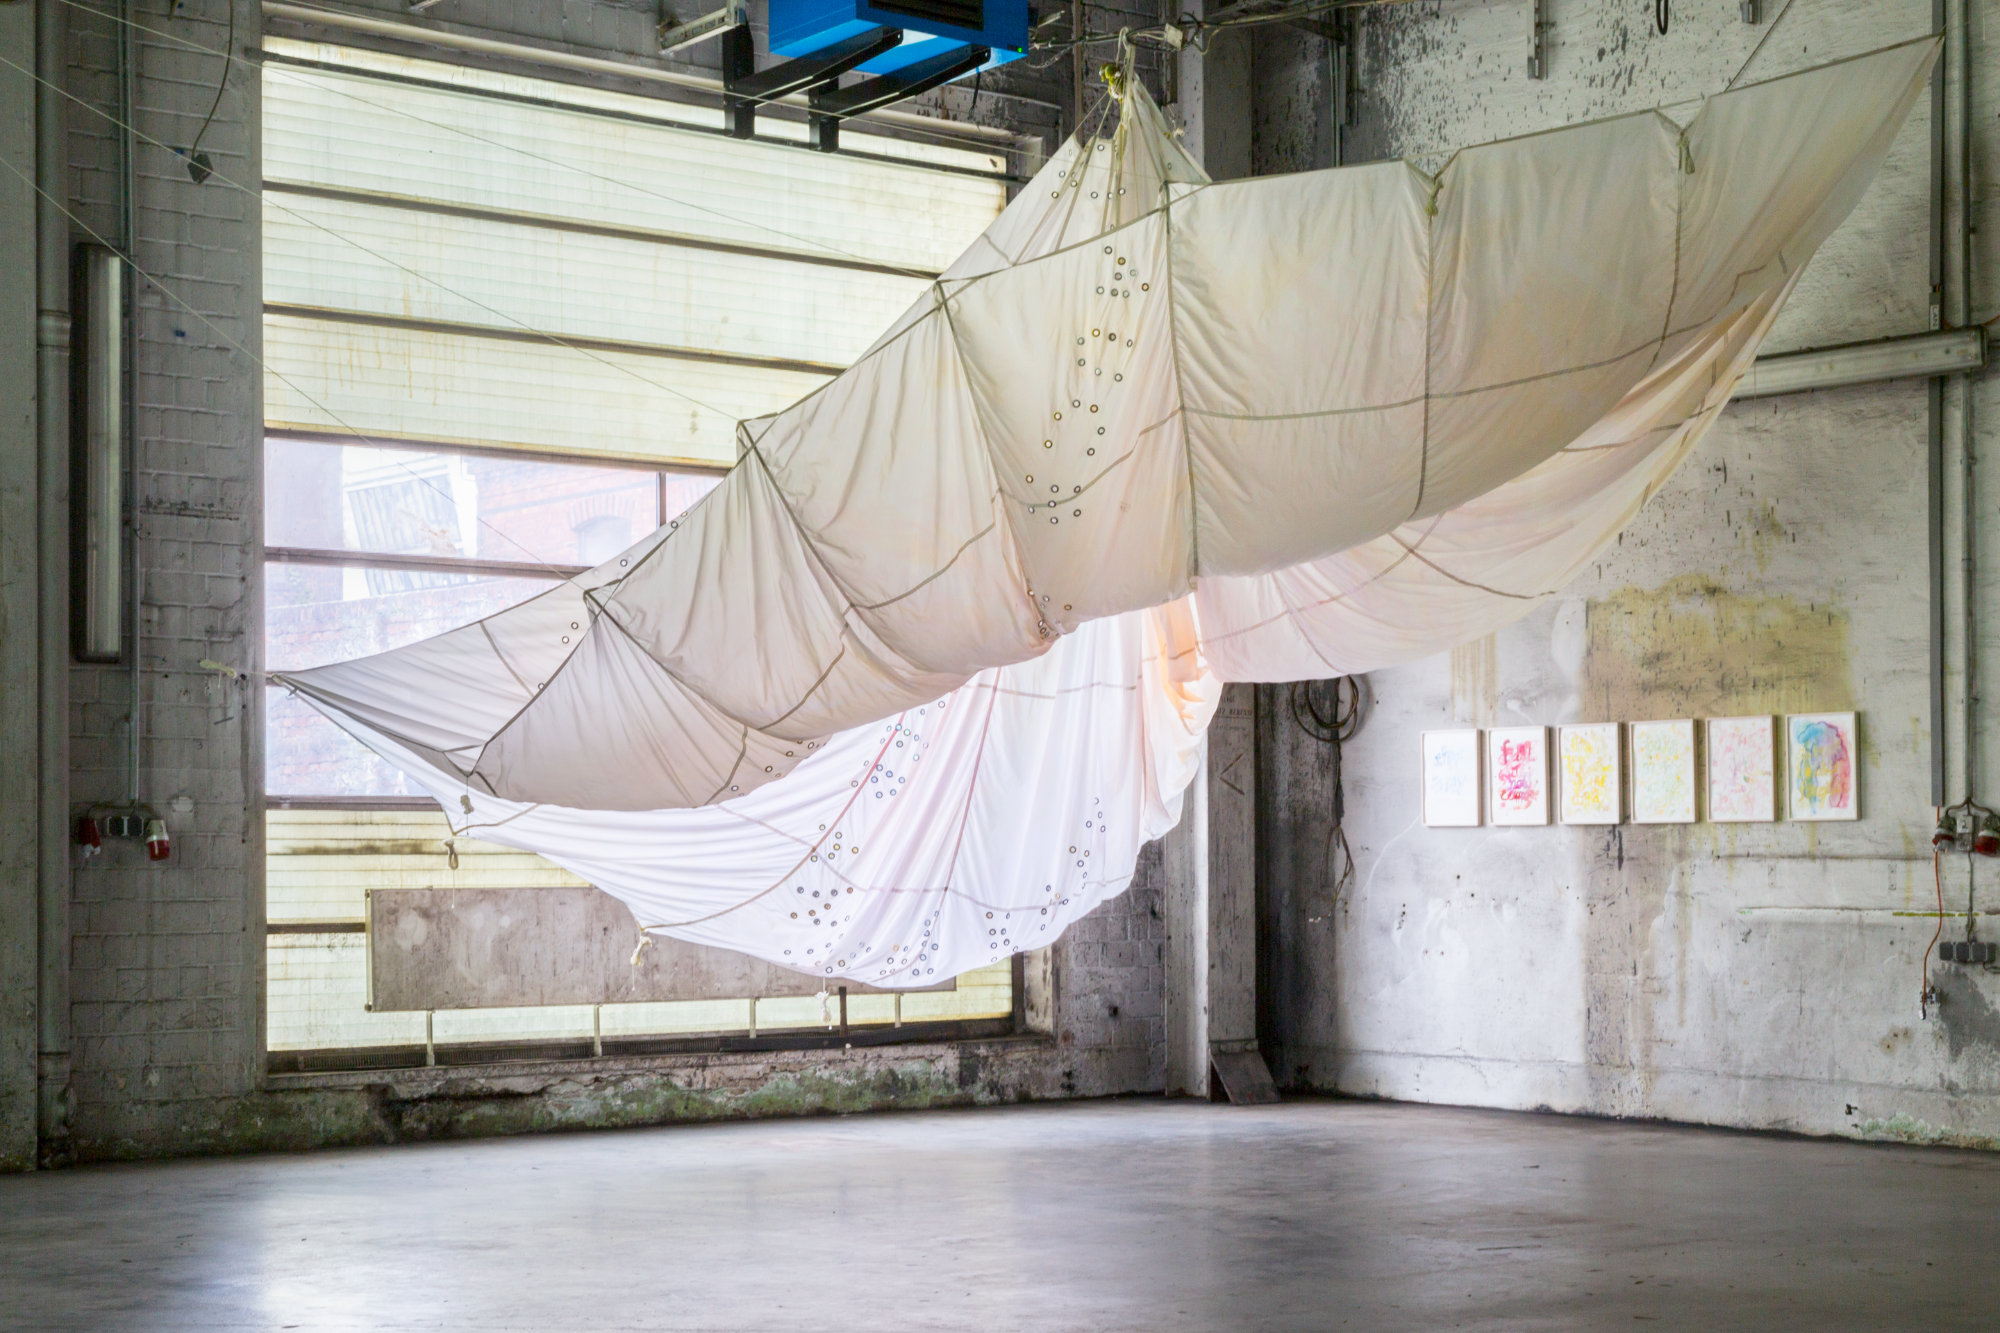 <p>Installation view Markues, <i>Ronald M. Schernikau Fallschirm, </i>ink and eyelets on parachute, dimensions variable, from the series <i>Pressure on Boys,</i> 2018</p>